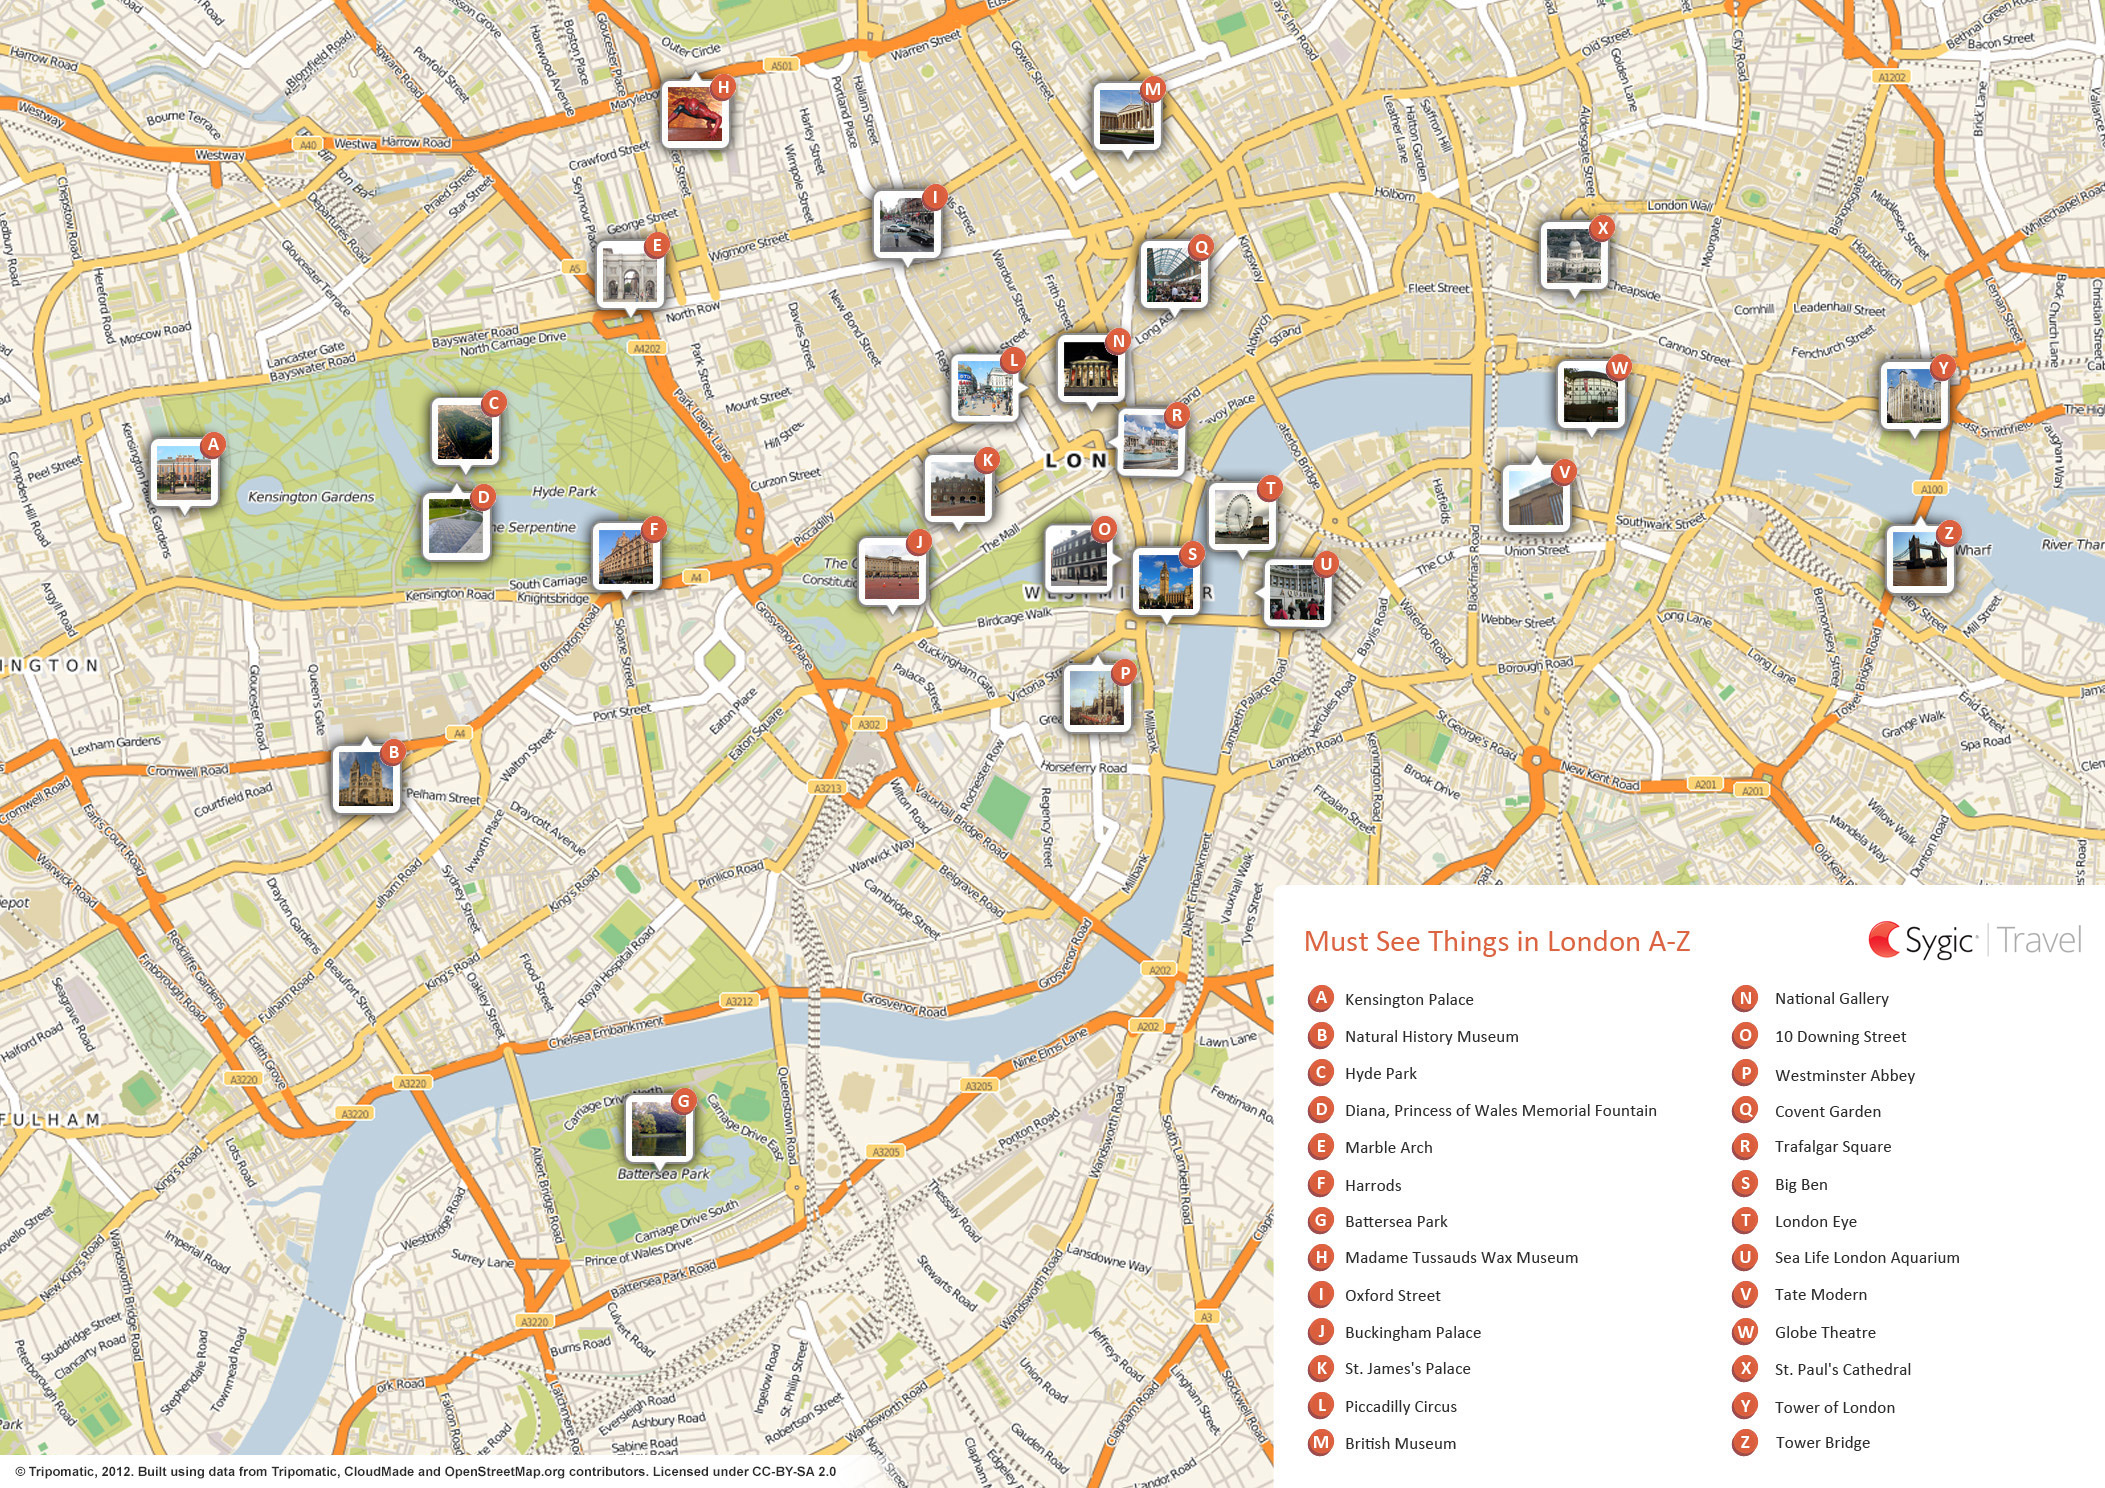 London Printable Tourist Map – Paris France Tourist Attractions Map